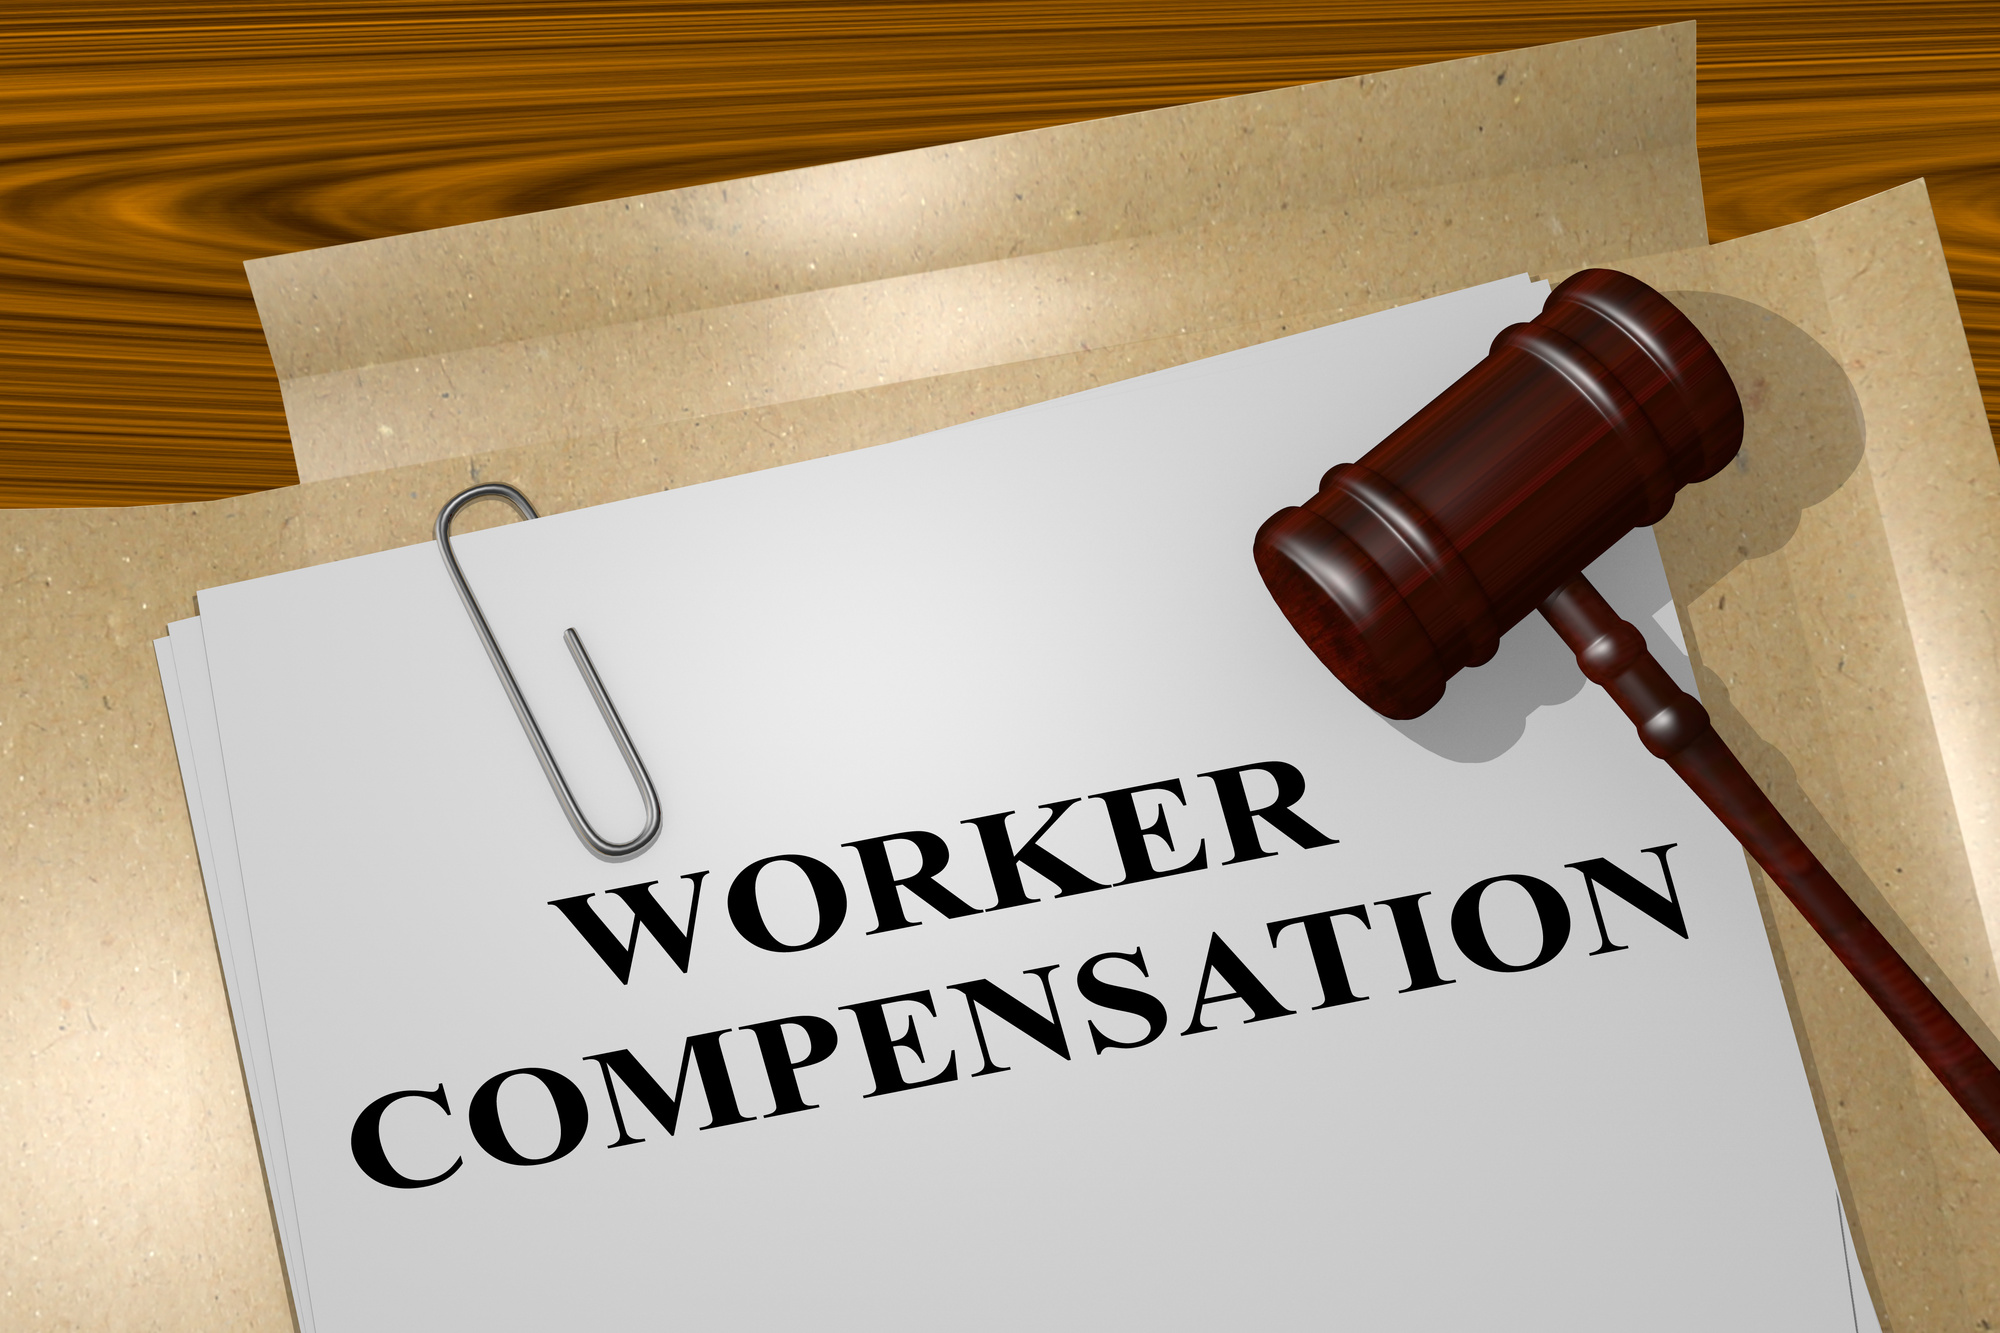 worker compensation on document